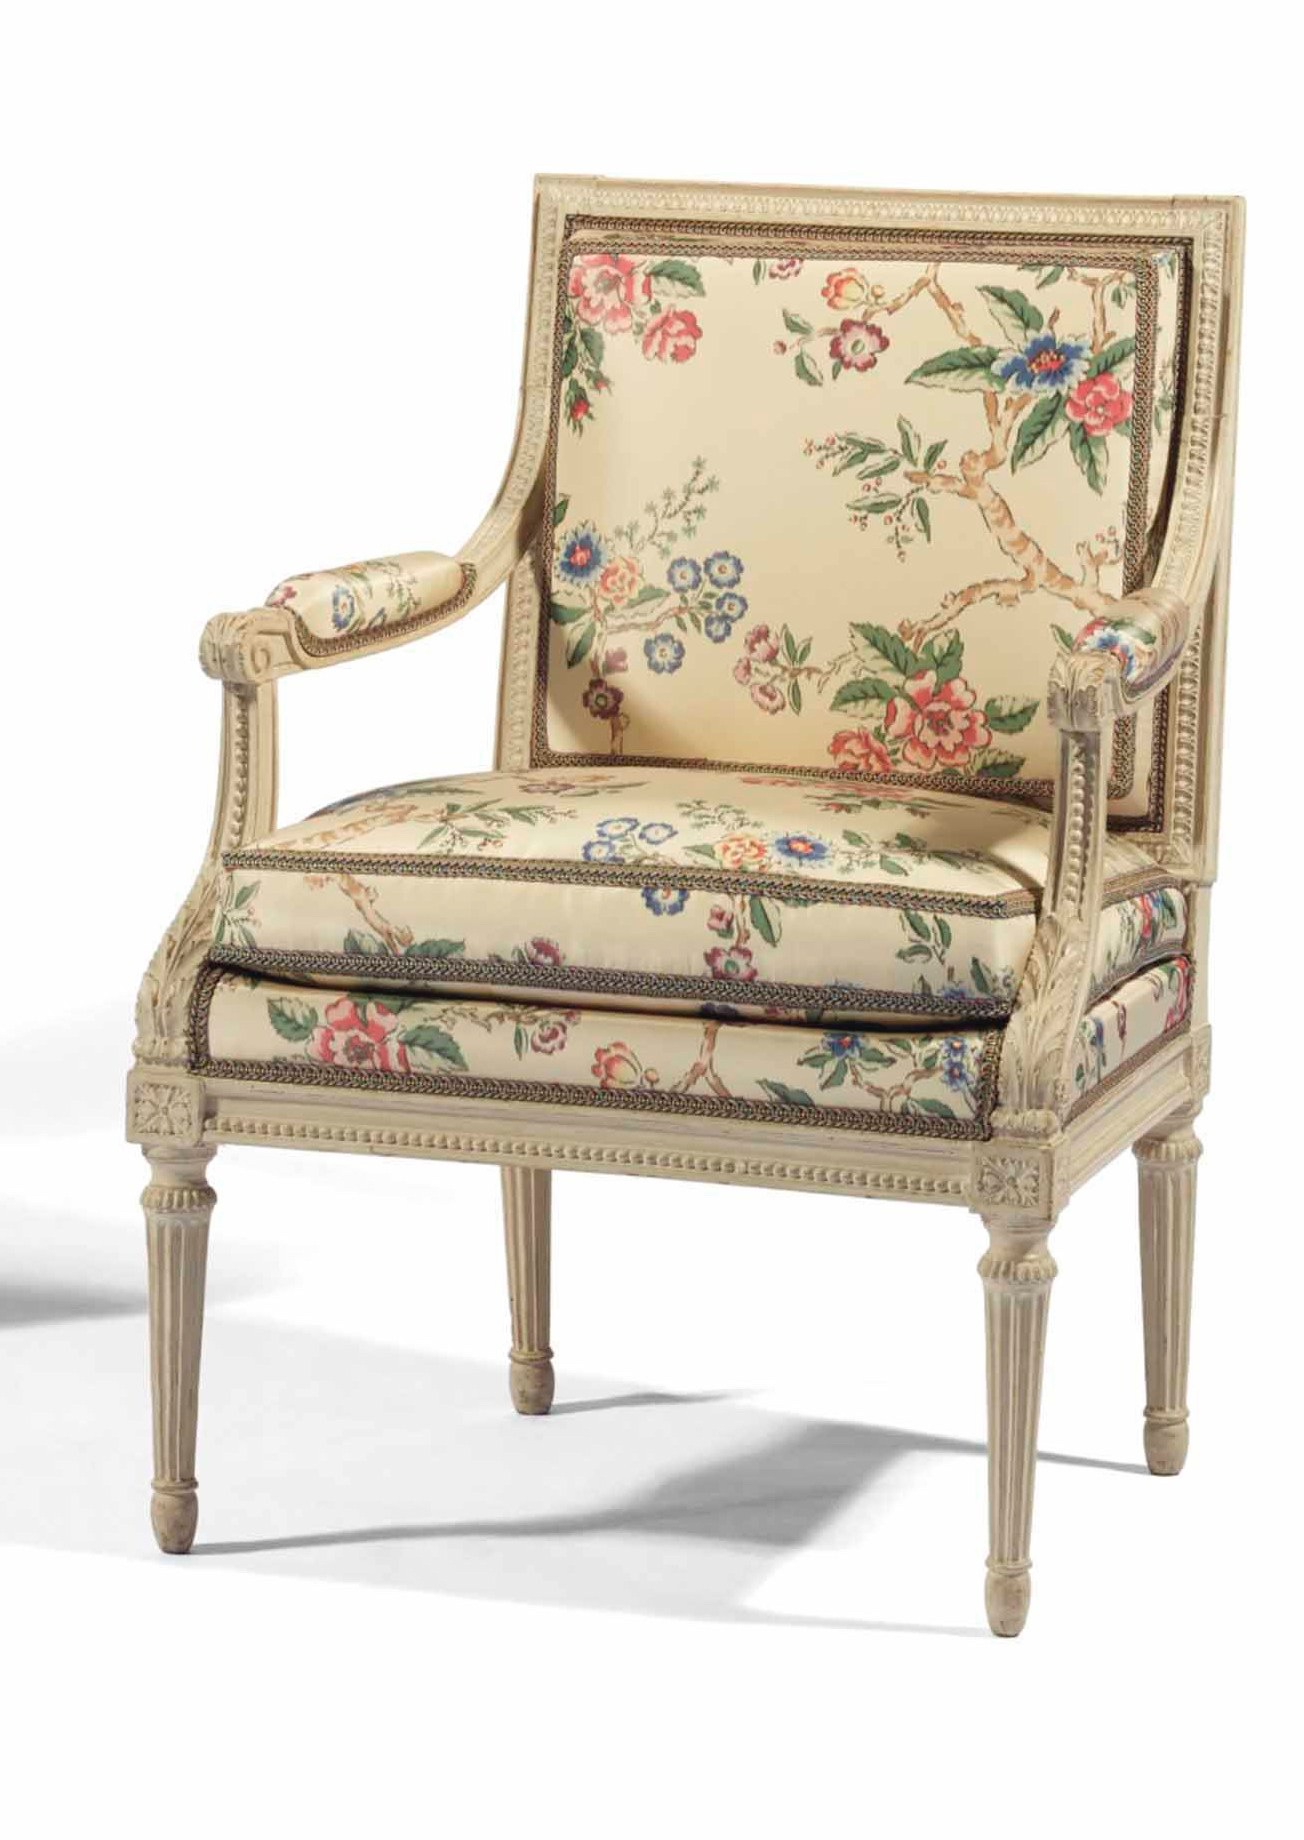 A Pair Of Louis XVI White Painted Fauteuils Likely Made For Marie Antoinette  Mackinnon Fine Furniture Collection